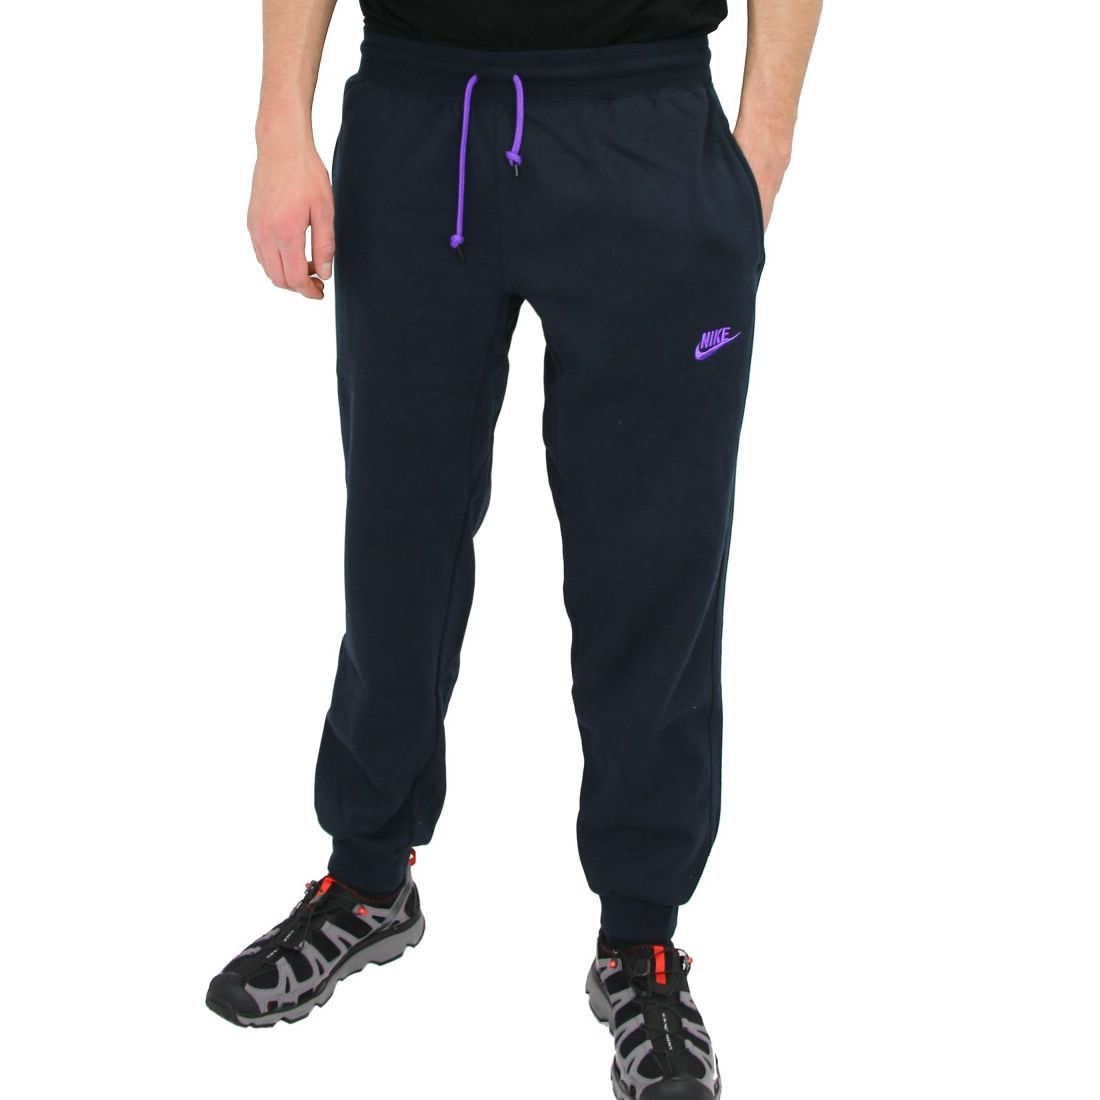 Nike-AW77-Fleece-Pant-Herren-Hose-Jogginghose-Sporthose-diverse-Farben